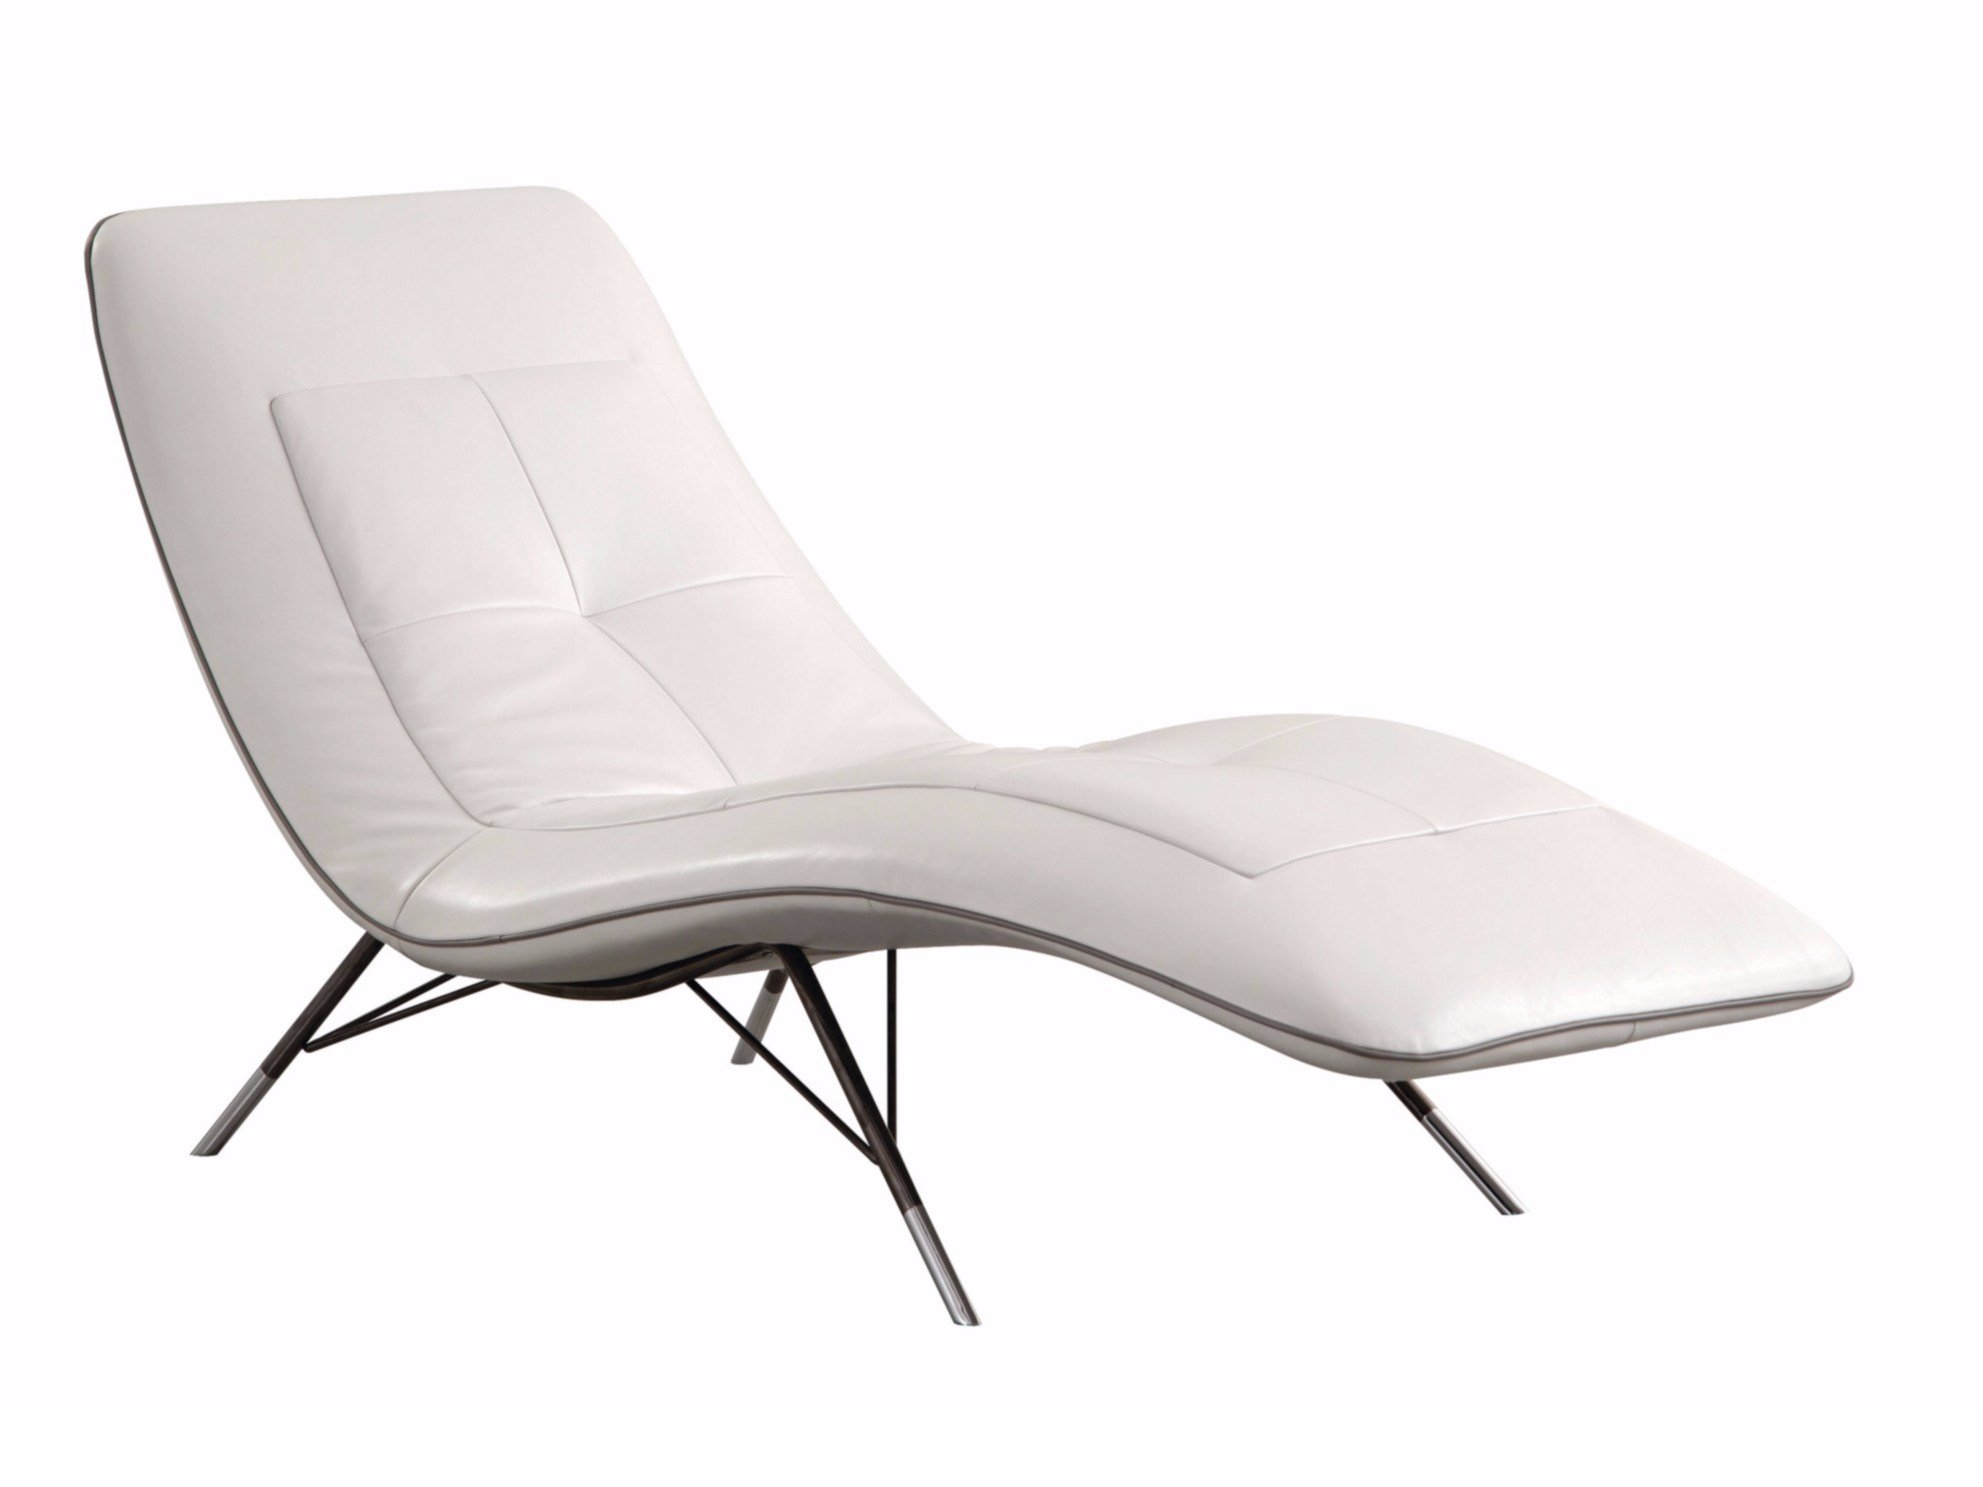 chaise longue estofada de pele solaris by roche bobois. Black Bedroom Furniture Sets. Home Design Ideas